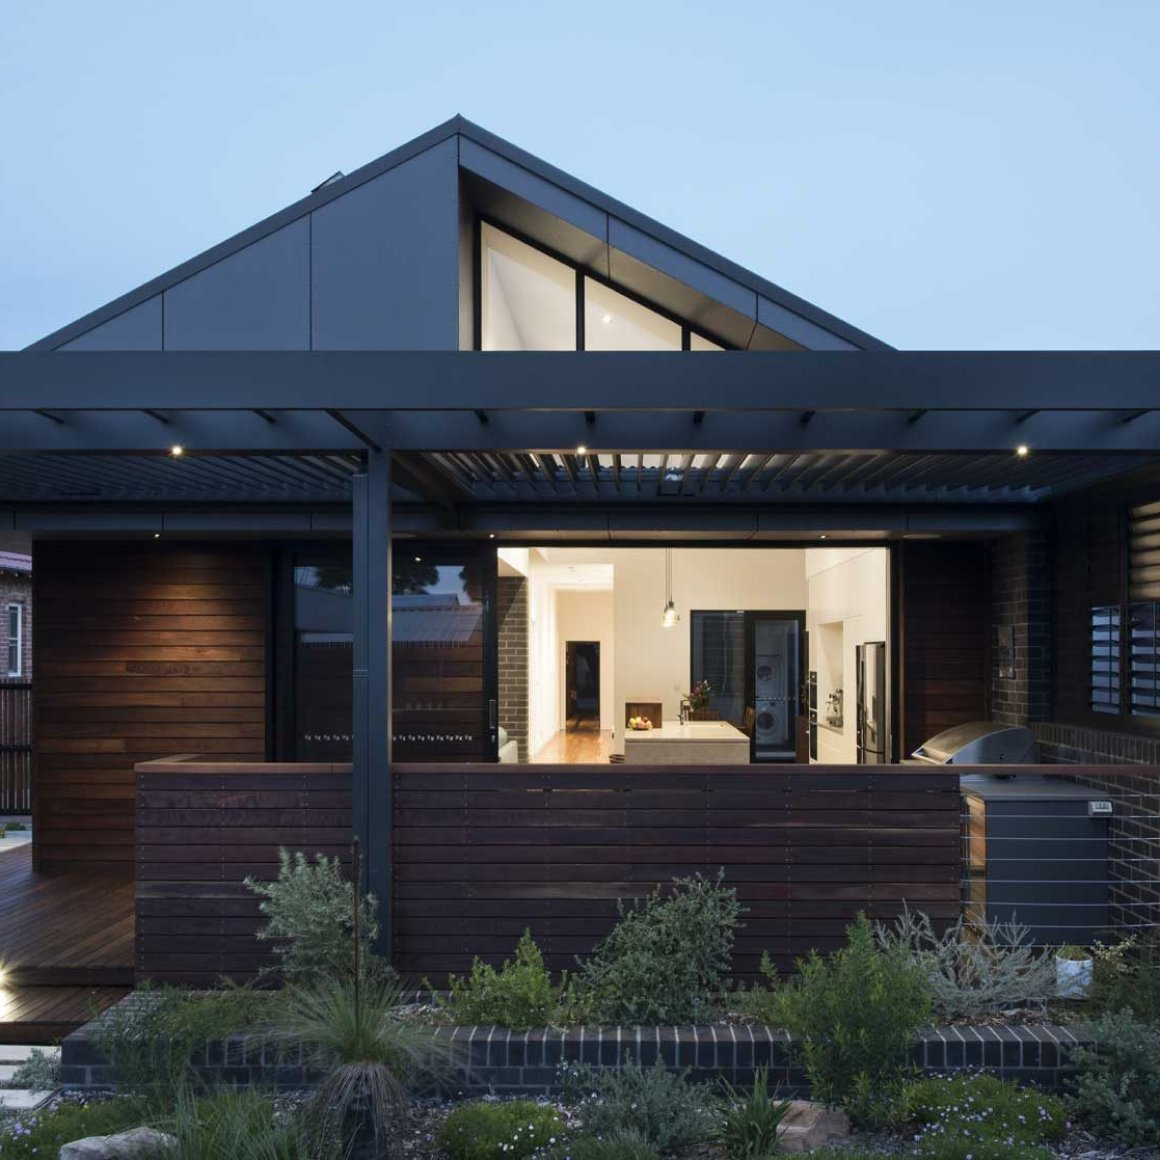 NSW ARCHITECTURE AWARDS 2018 COMMENDATION EIGHT FOUR GORDON